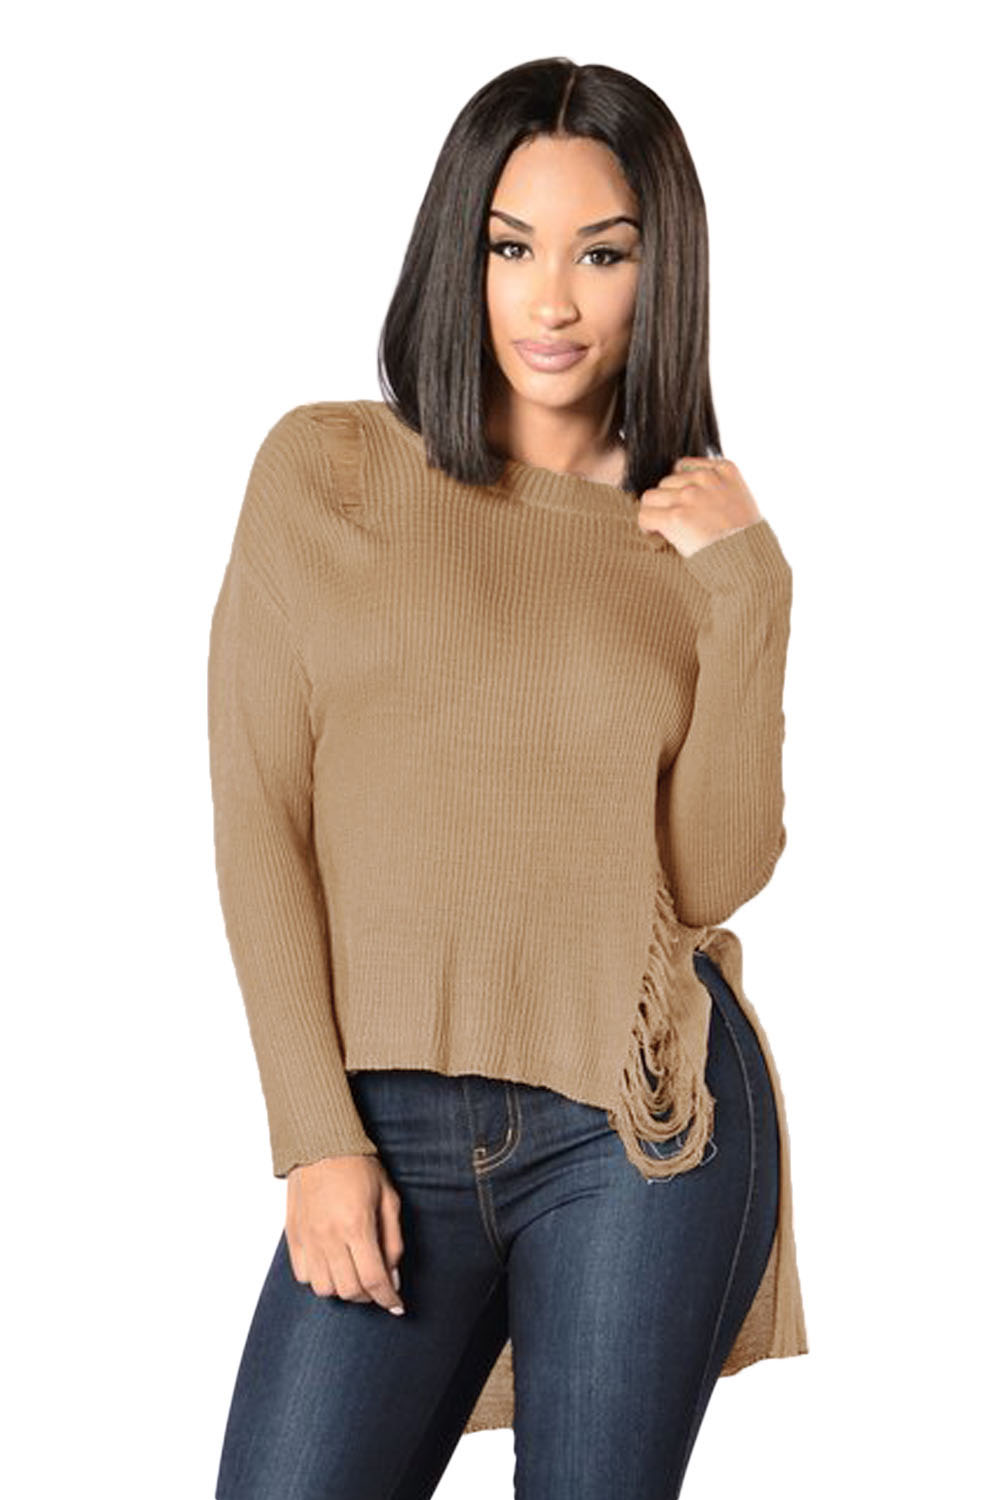 khaki-sheer-knit-tangled-long-tail-sweater-llc27627p-16-1